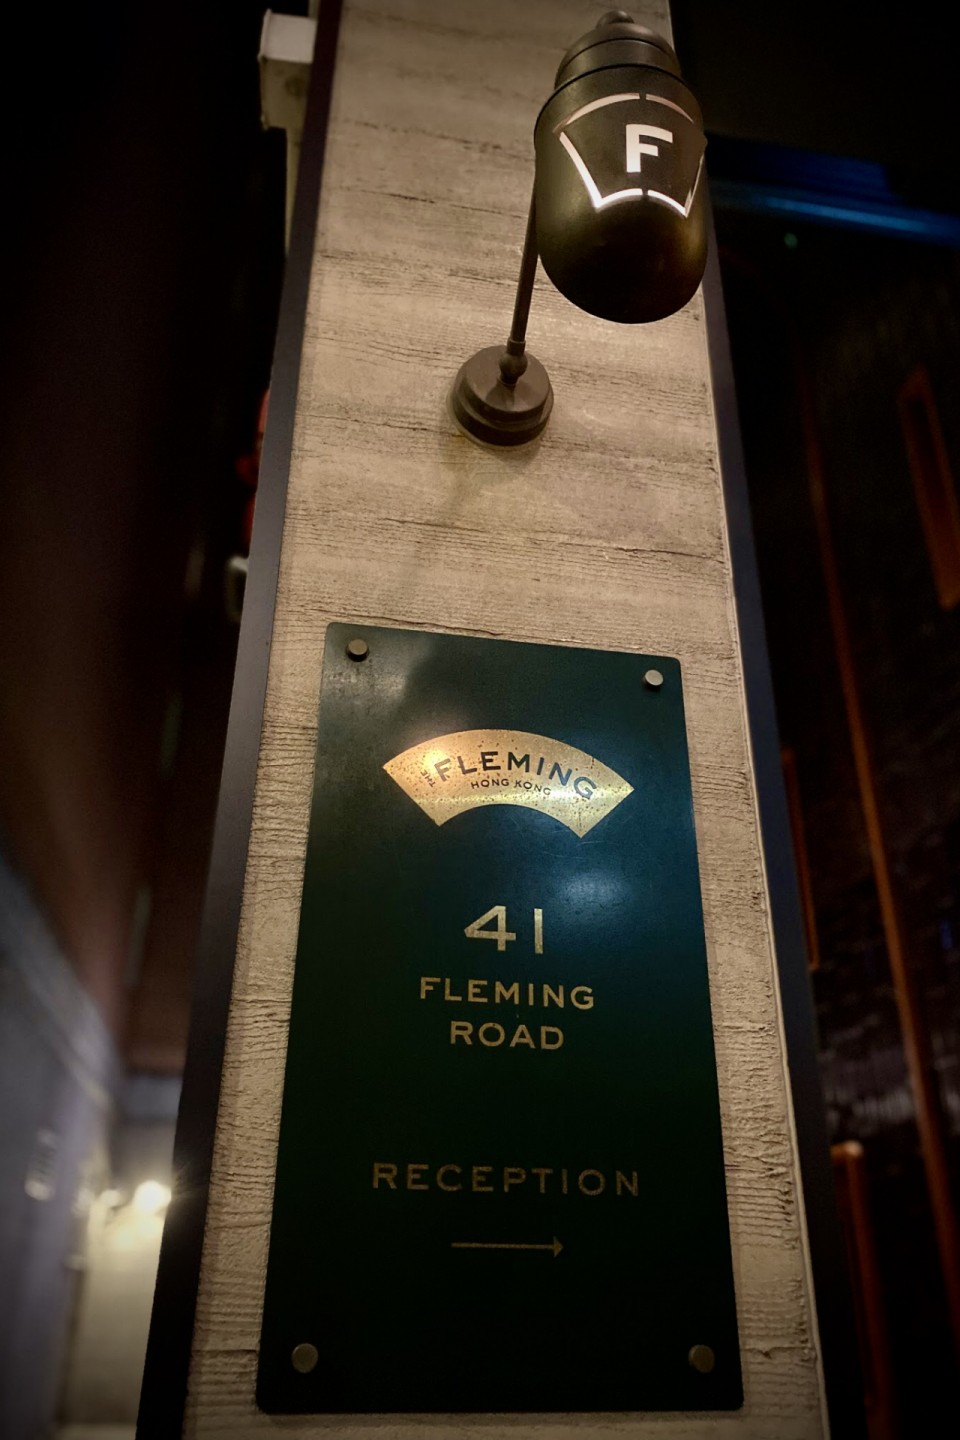 The Fleming Hotel - 香港酒店Staycation推介